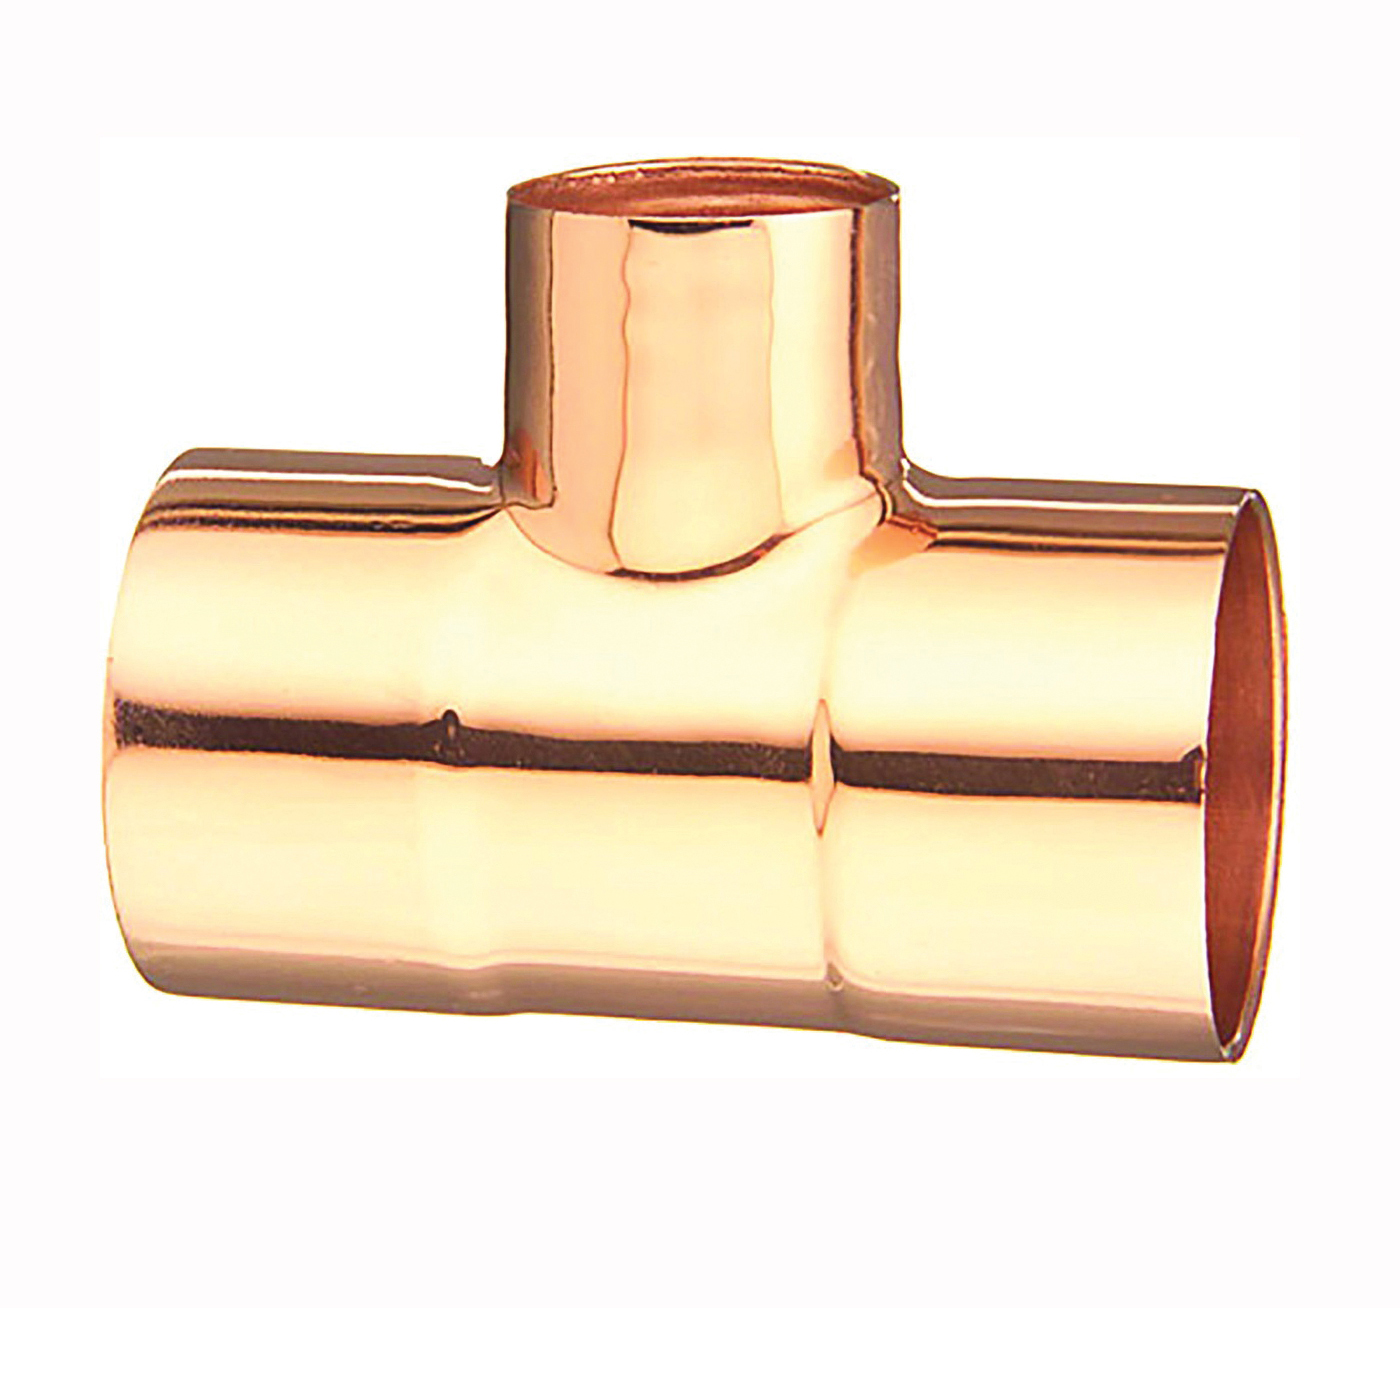 Picture of EPC 111R Series 32918 Pipe Reducing Tee, 1-1/2 x 1-1/2 x 3/4 in, Sweat, Copper